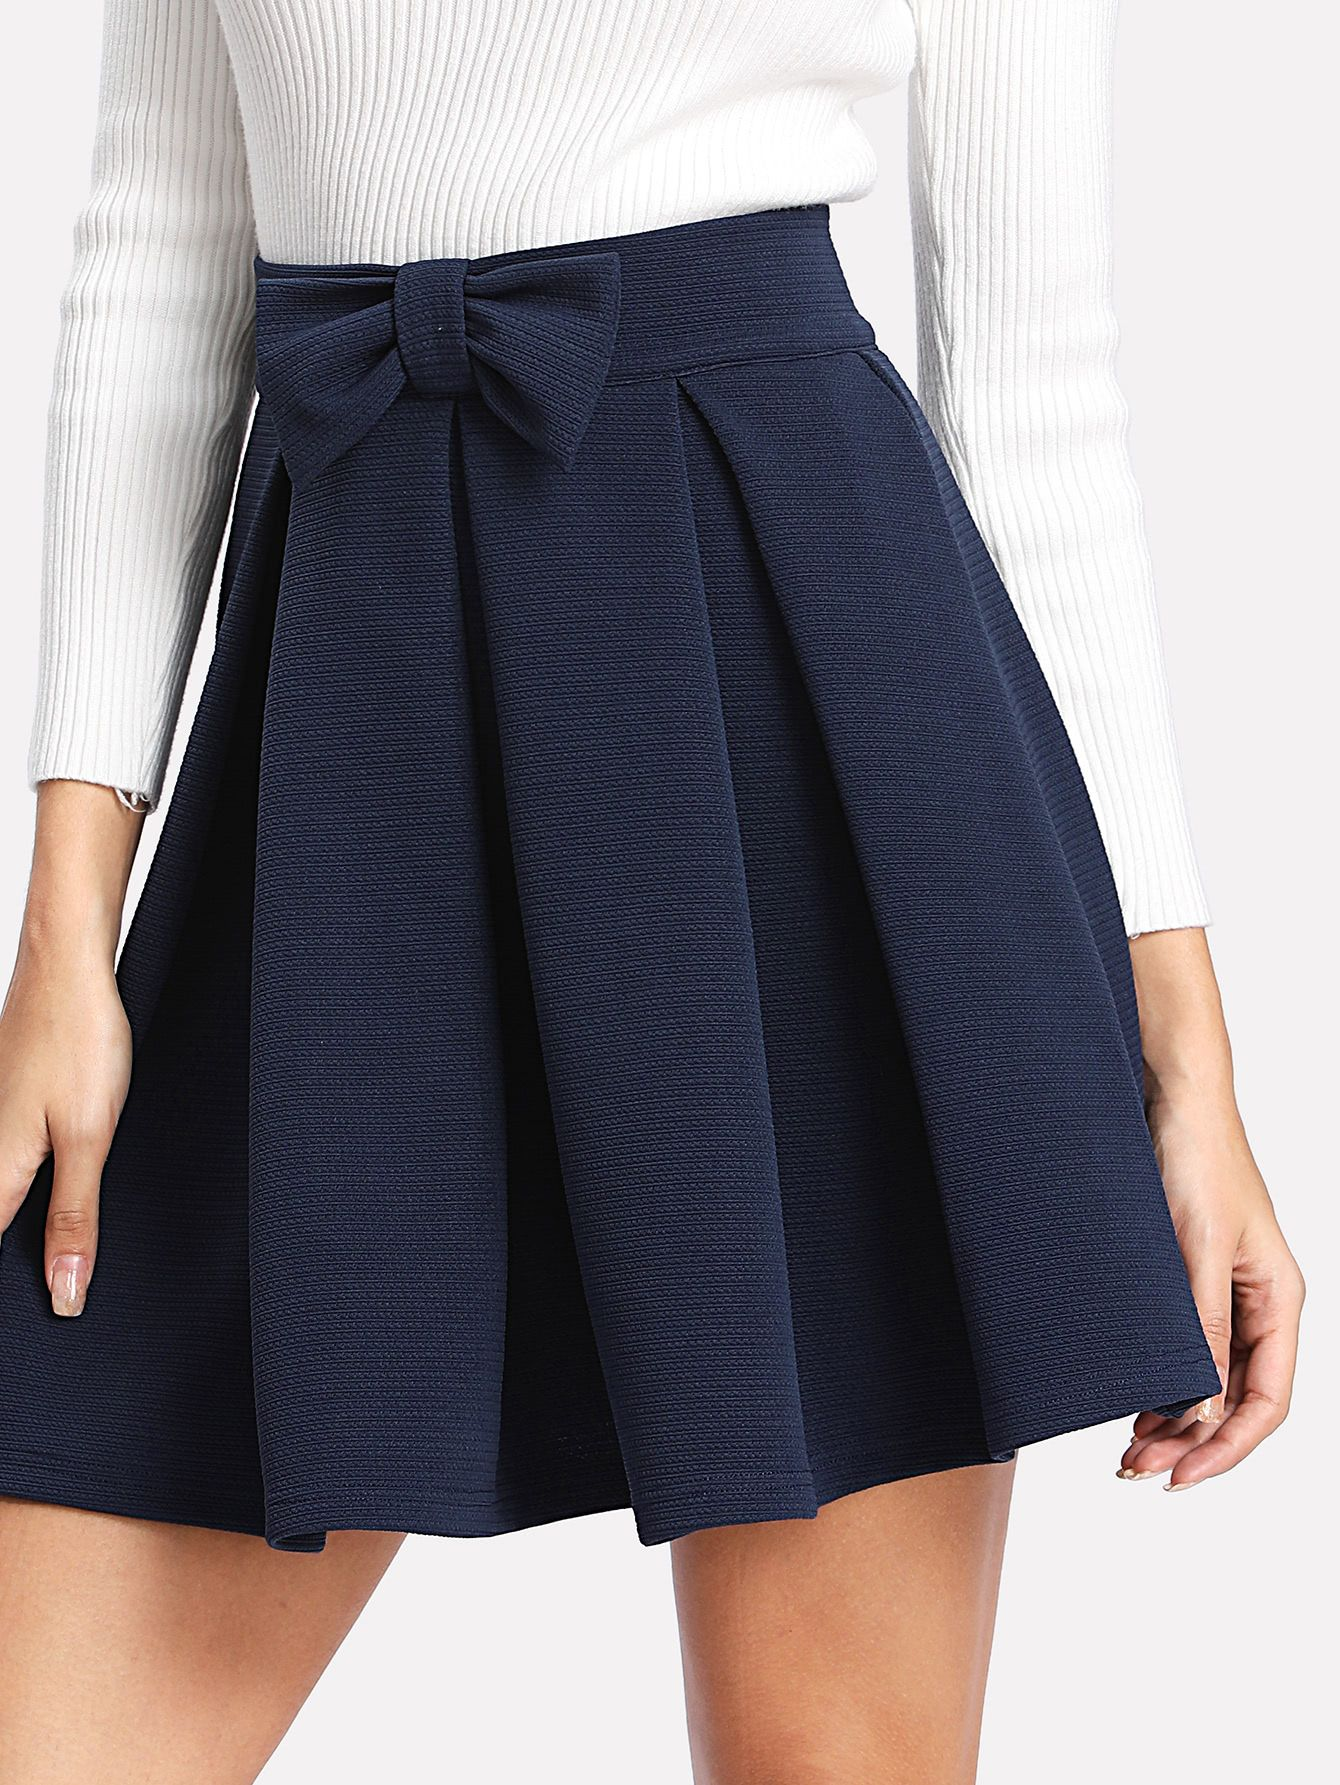 Box Pleat Skirt